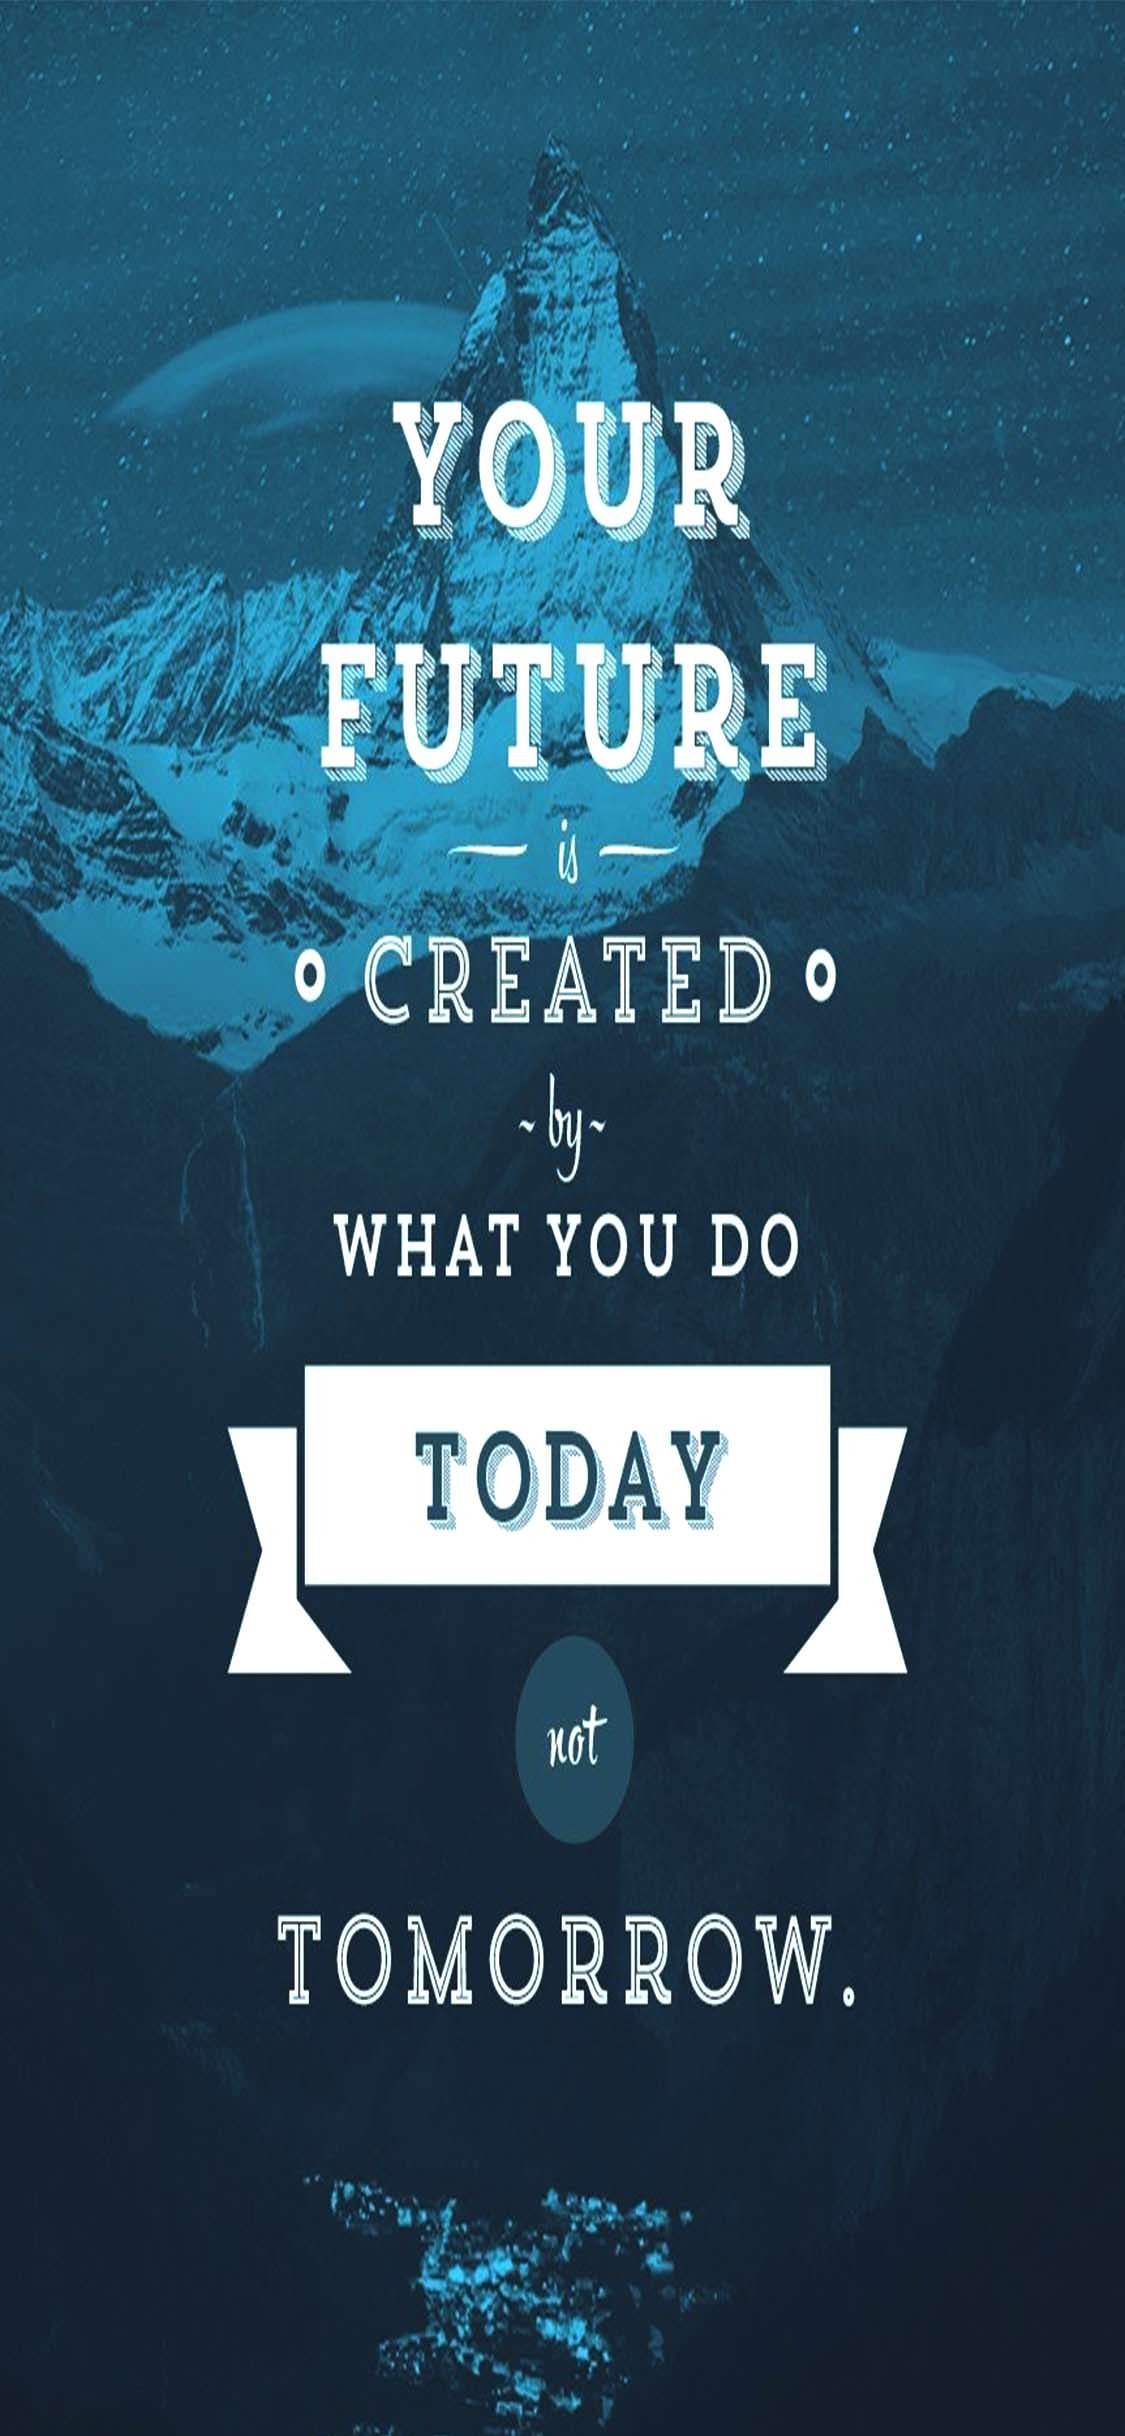 1125 A 2436 Your Future Motivational Iphone Xs Wallpapers Iphone Best Motivational Wallpapers Hd 1125x2436 Wallpaper Teahub Io